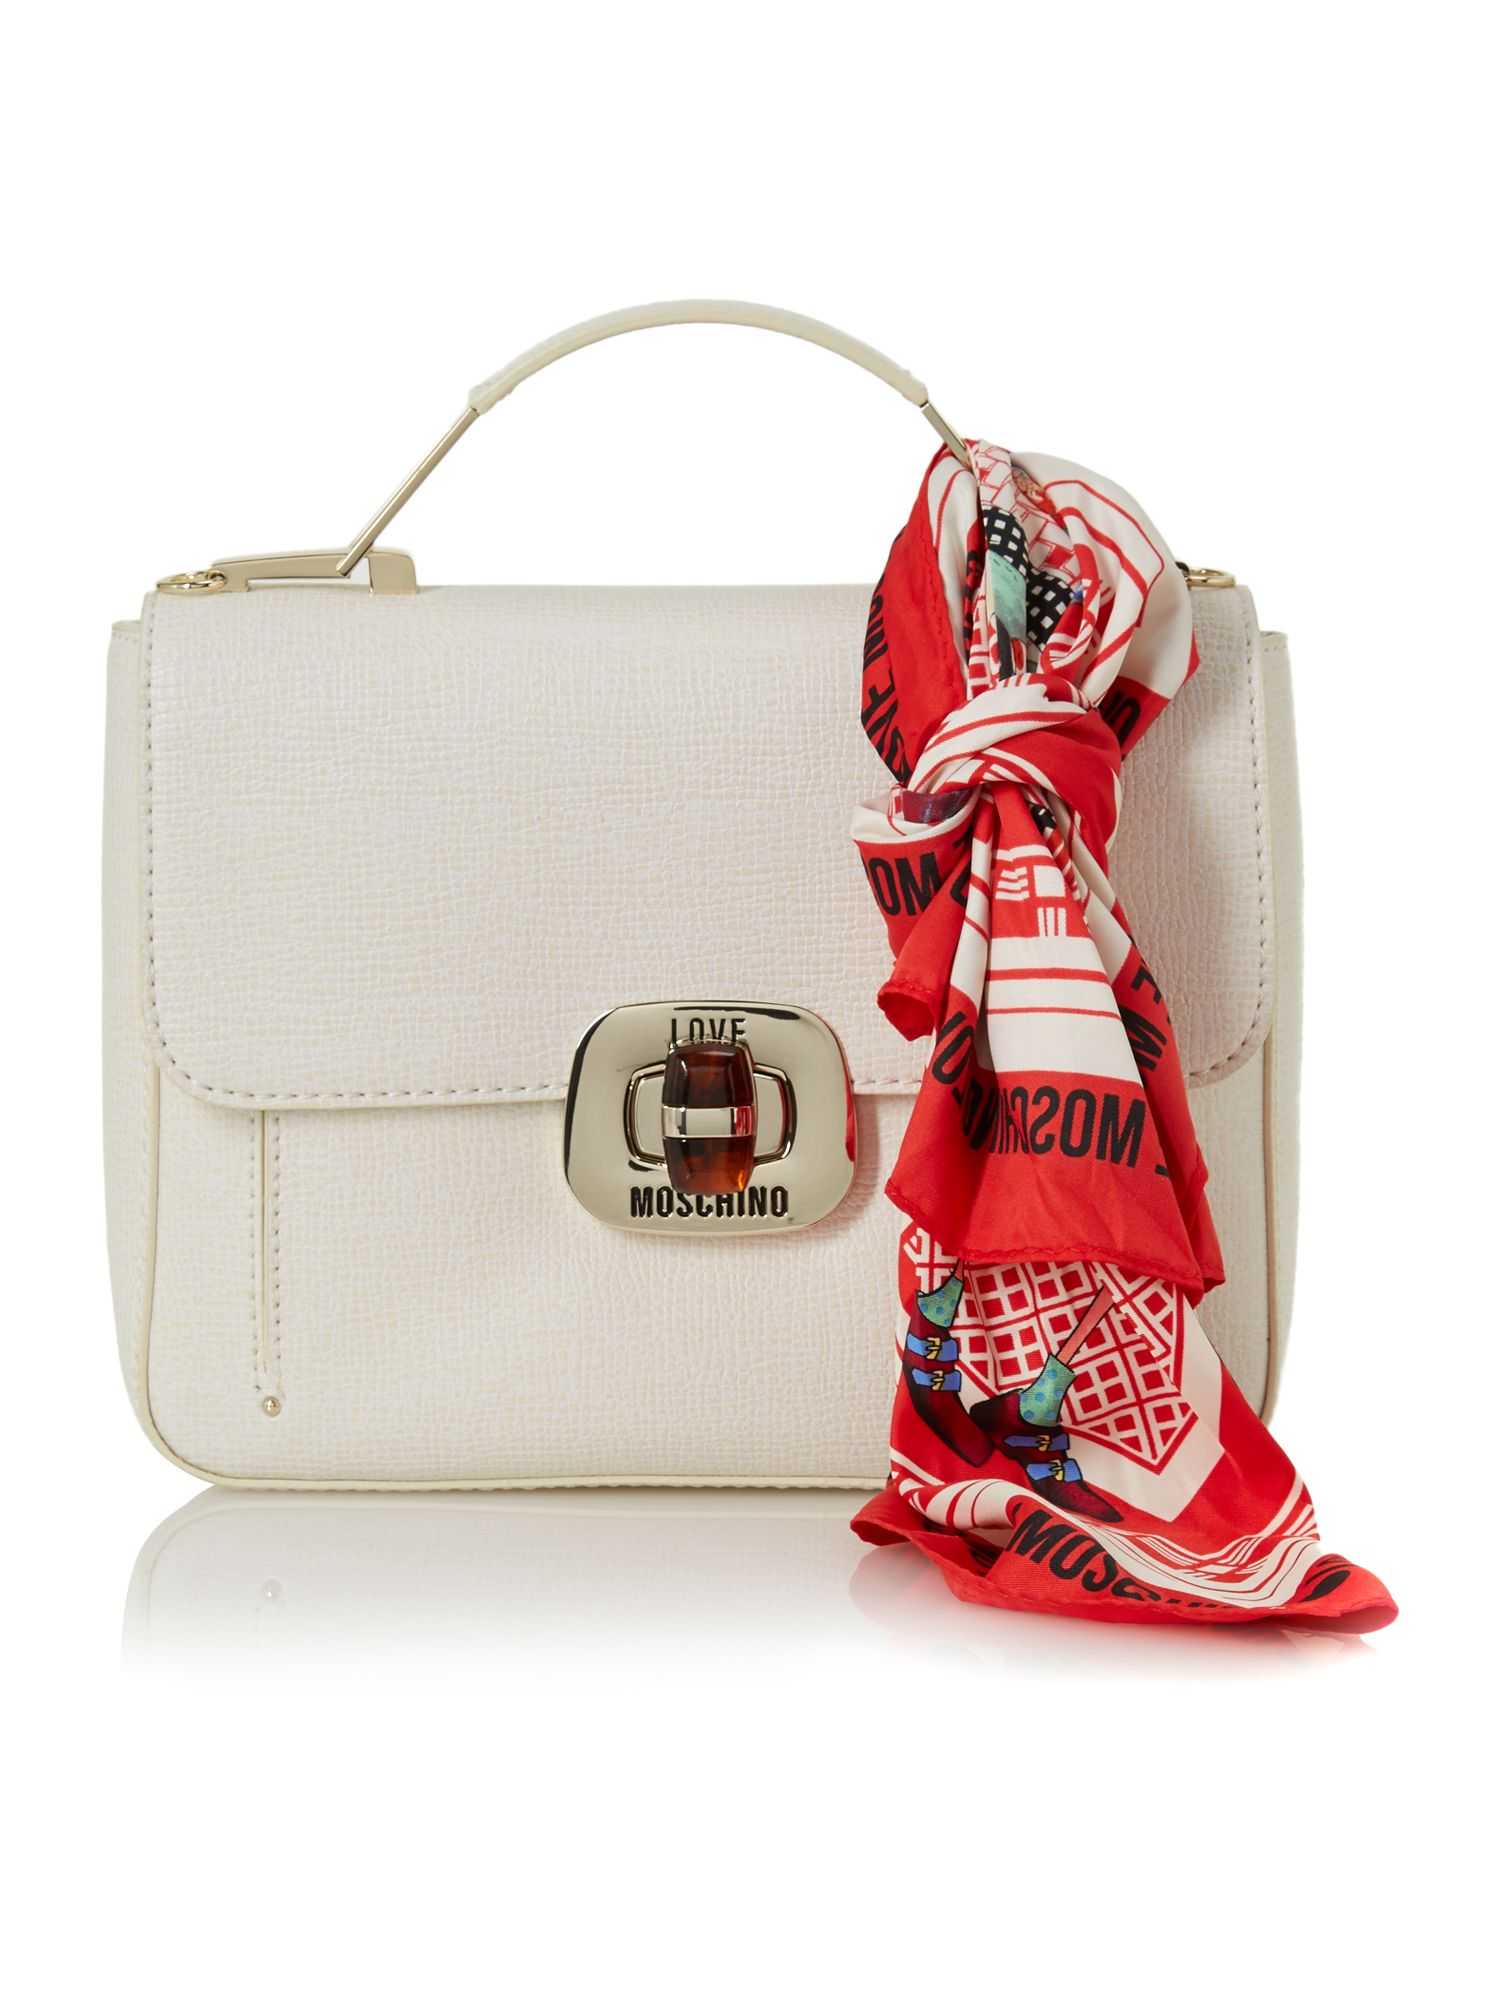 Saffiano white small flapover tote bag